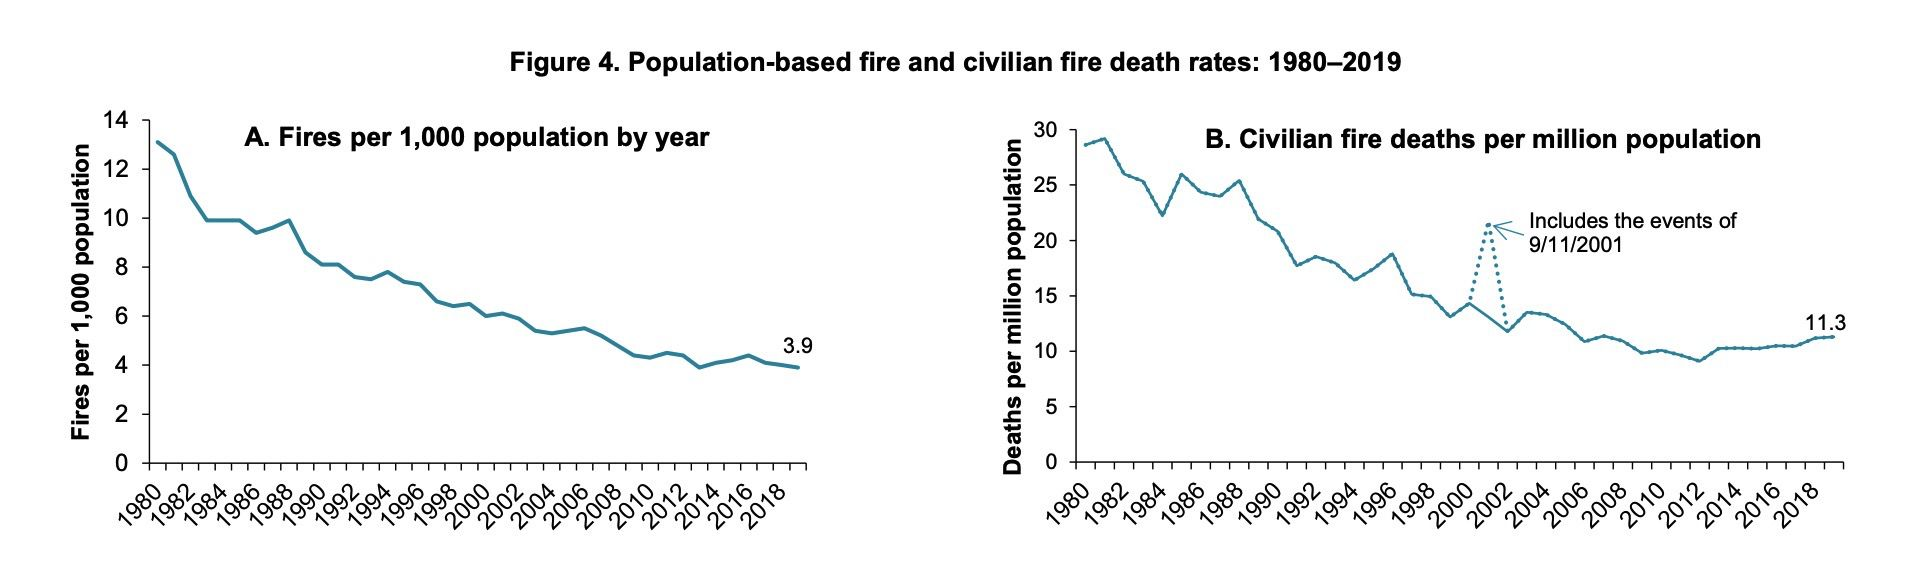 Rate of fires is dropping